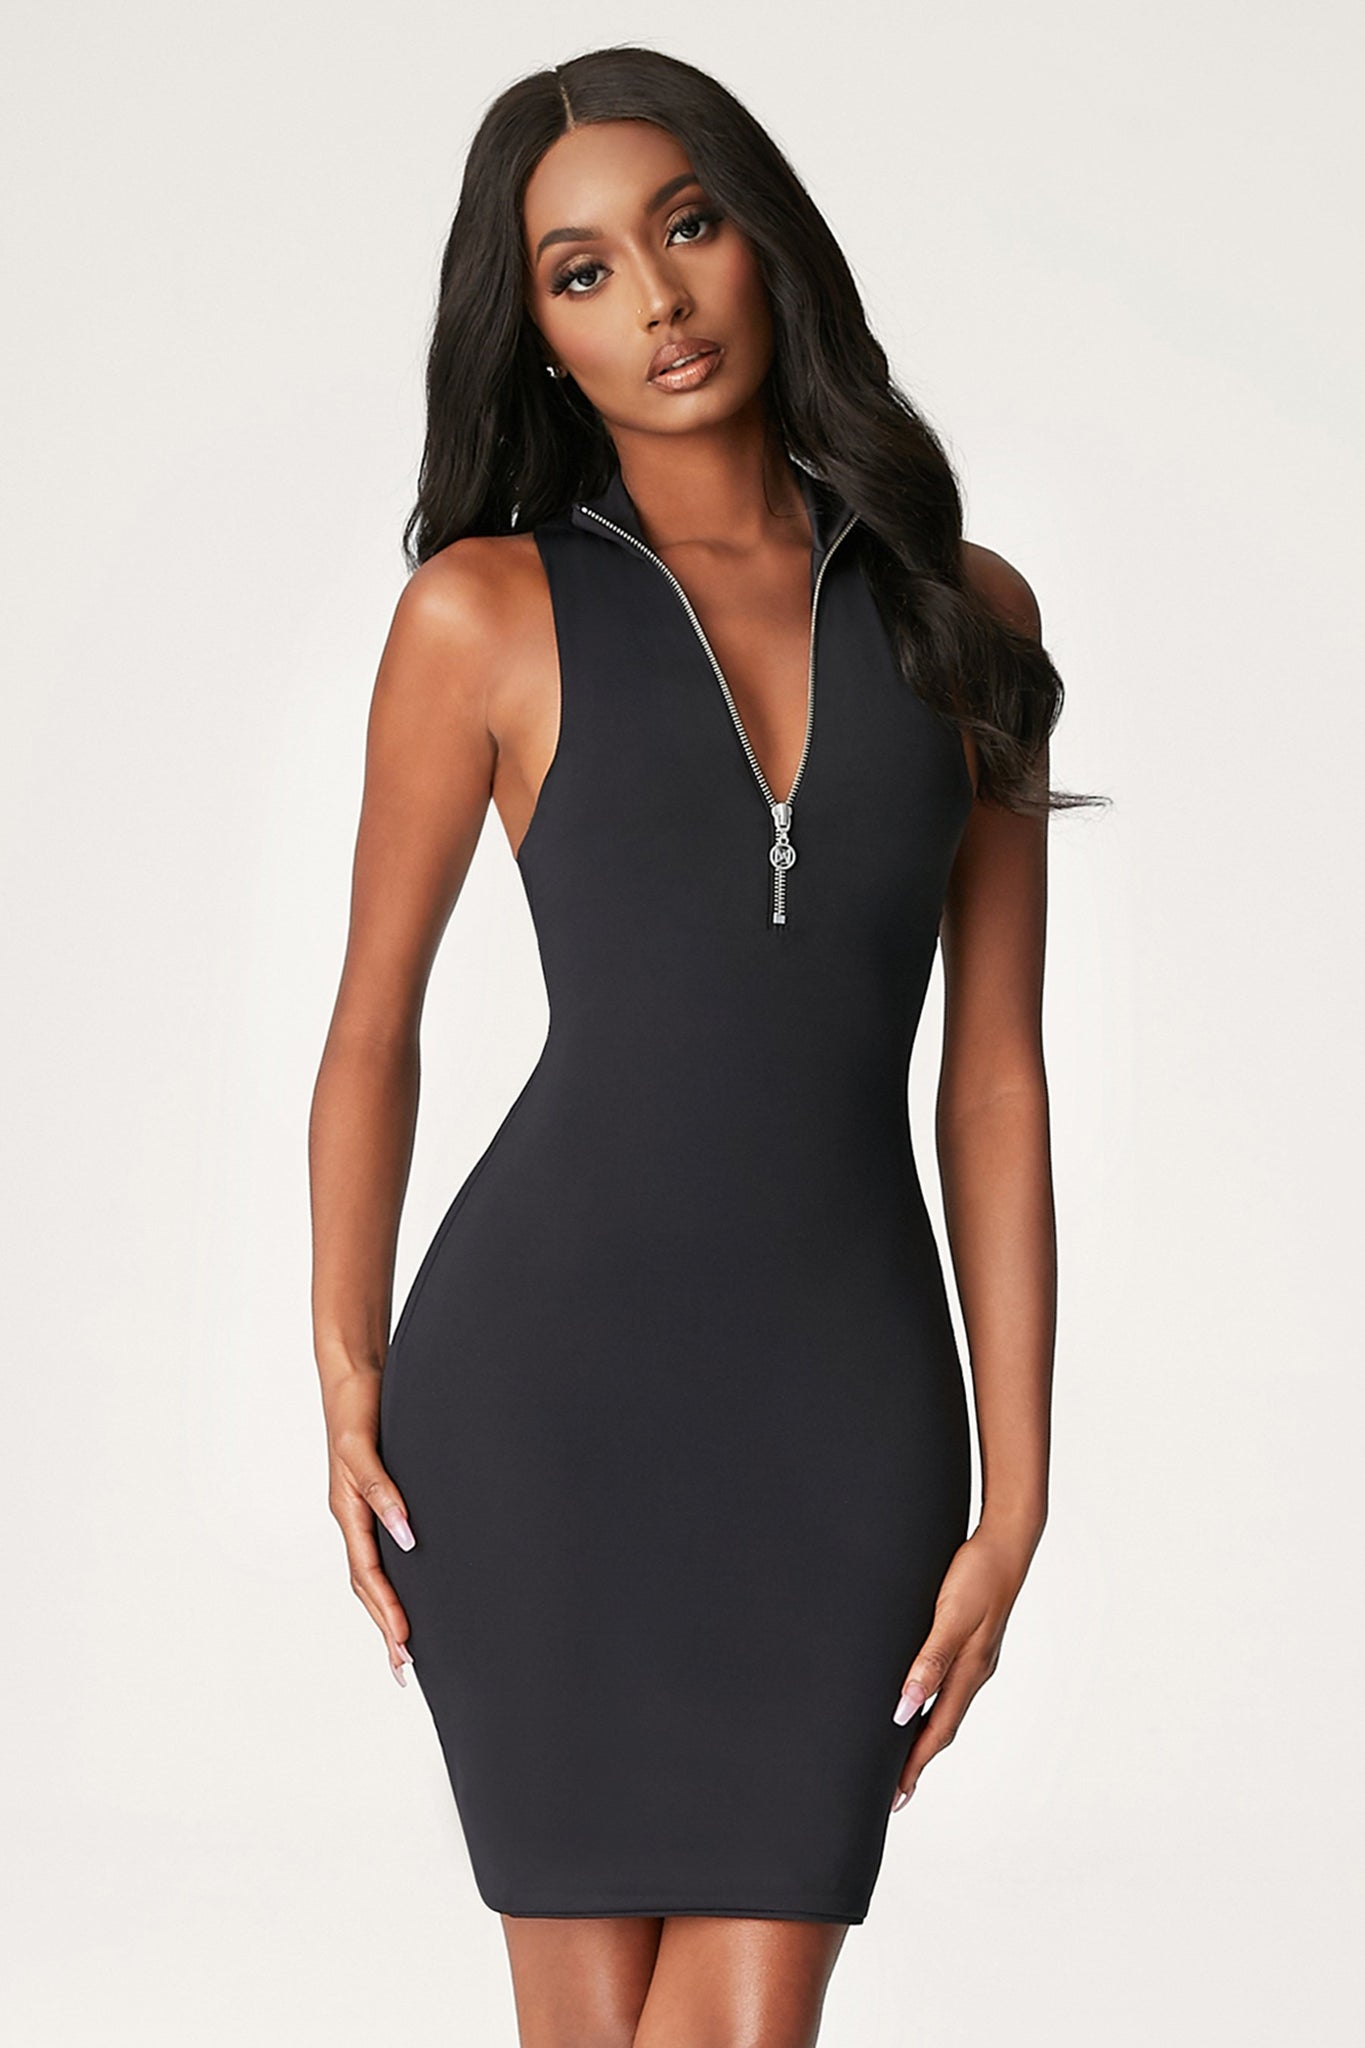 Fiona Sleeveless Zip Front Mini Dress - Black - MESHKI